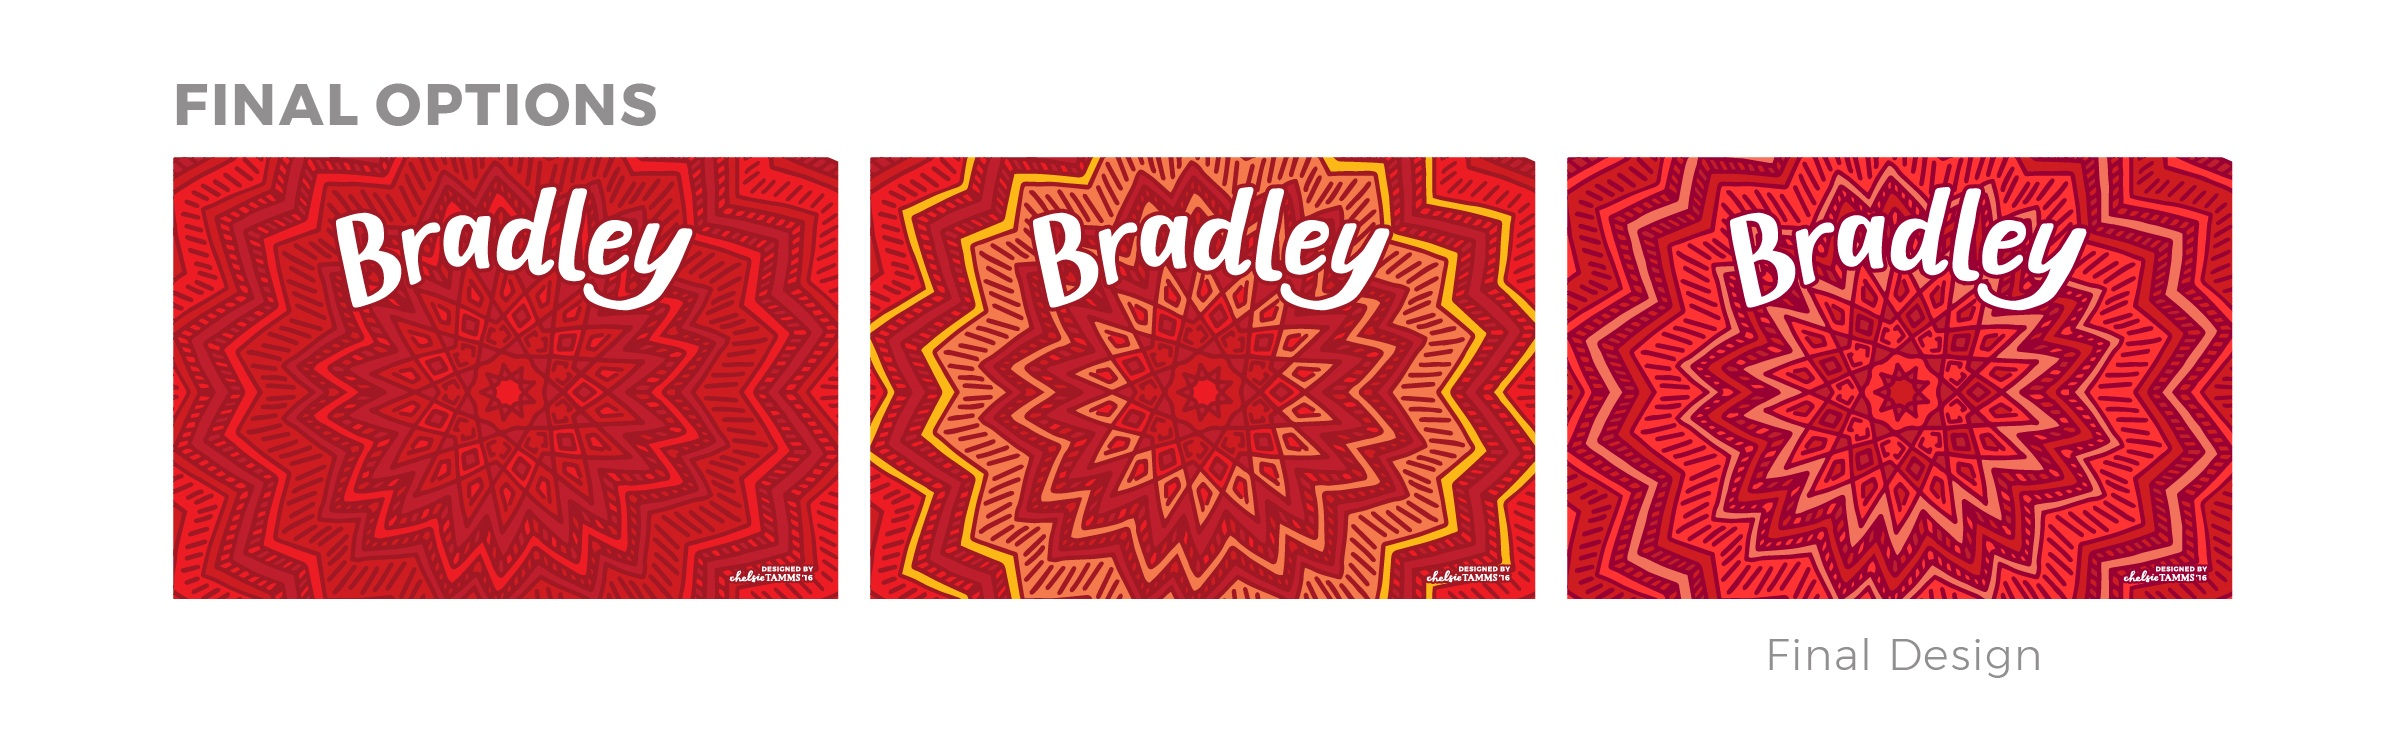 Bradley Mural Design - Final Design Options